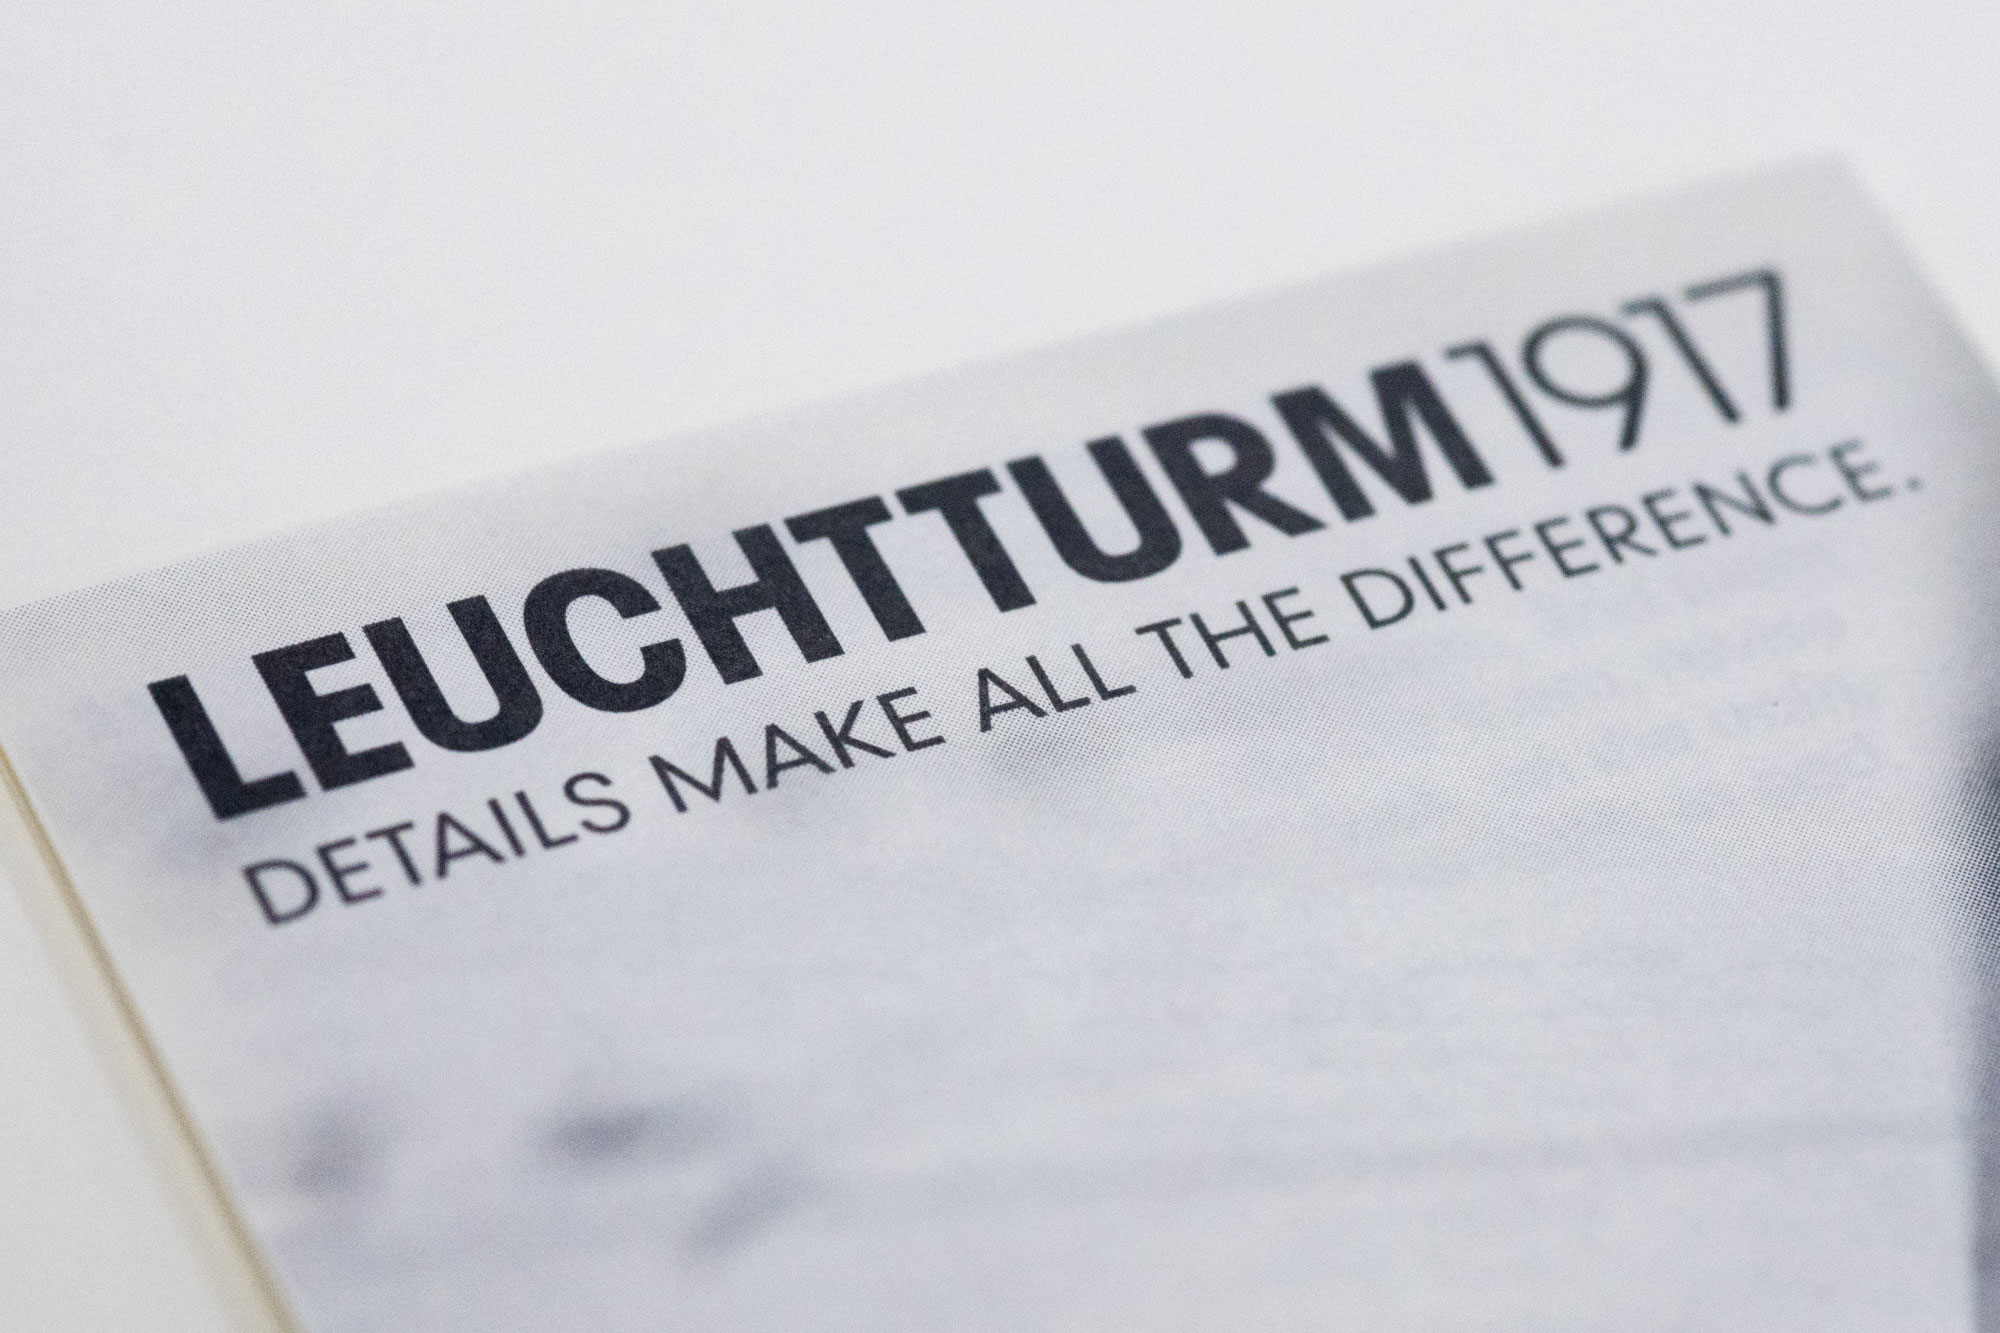 5 top reasons to use a Leuchtturm1917 notebook